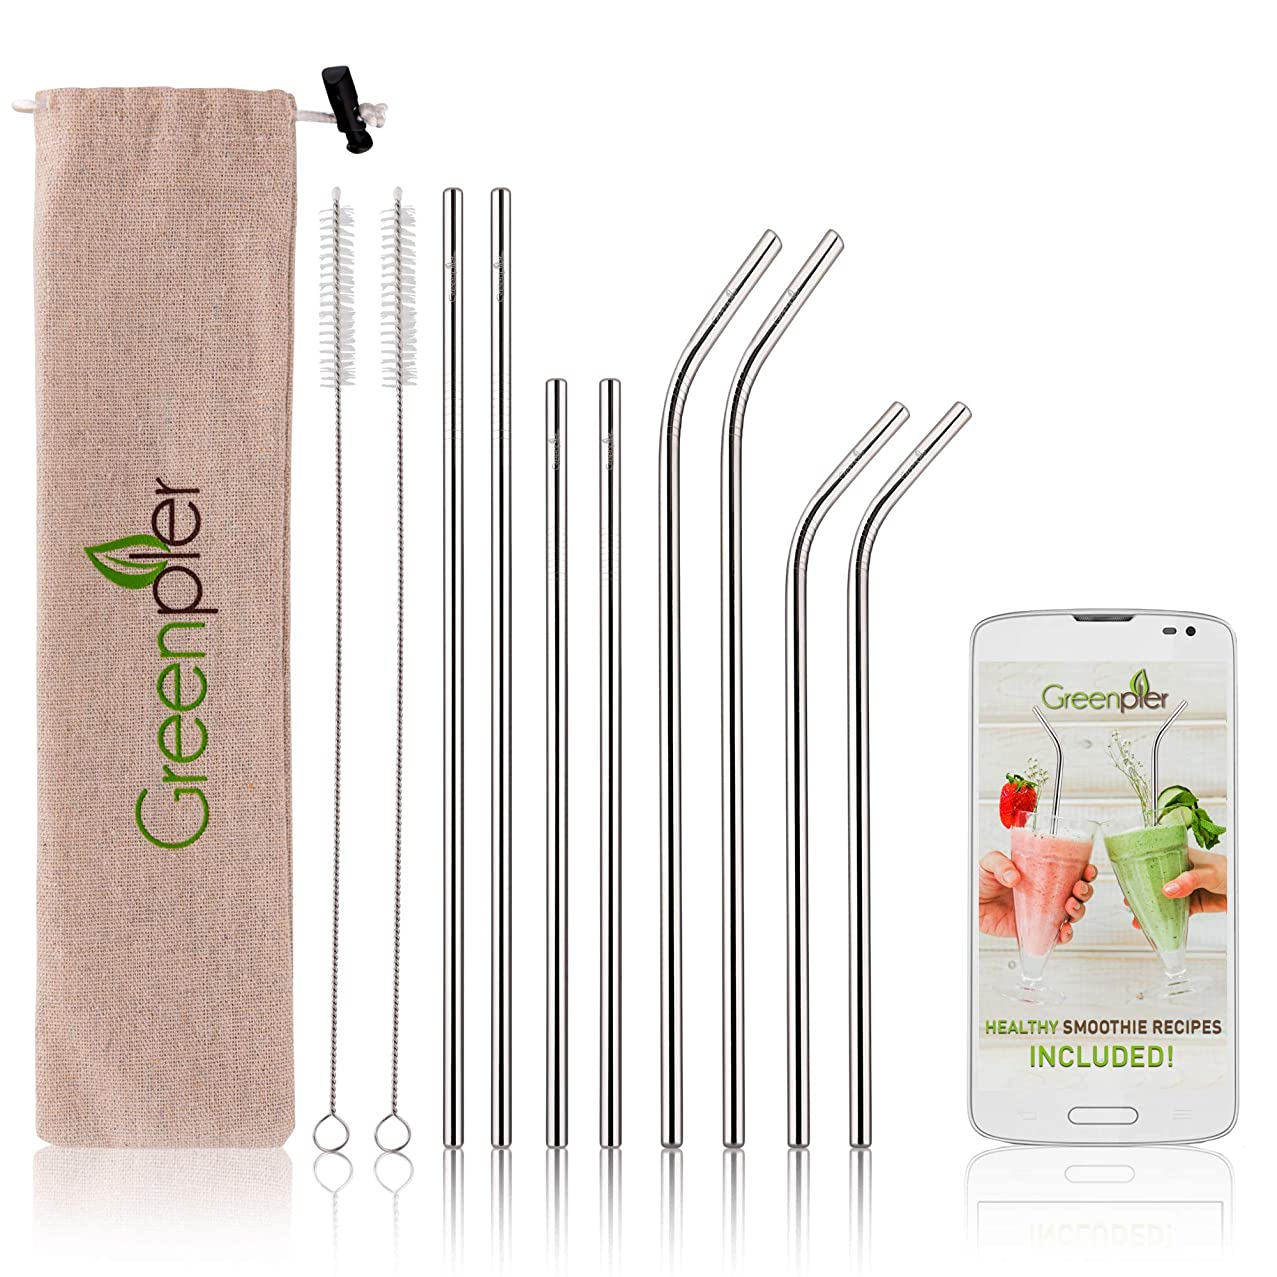 Stainless Steel Reusable Straws with Rounded Edge - Set of 8 in 2 Lengths - 4 Straight 4 Bent, 4 Silicone Tips, 2 Cleaning Brushes, Carry Bag - Use with Tumblers, Glasses and Mason Jars